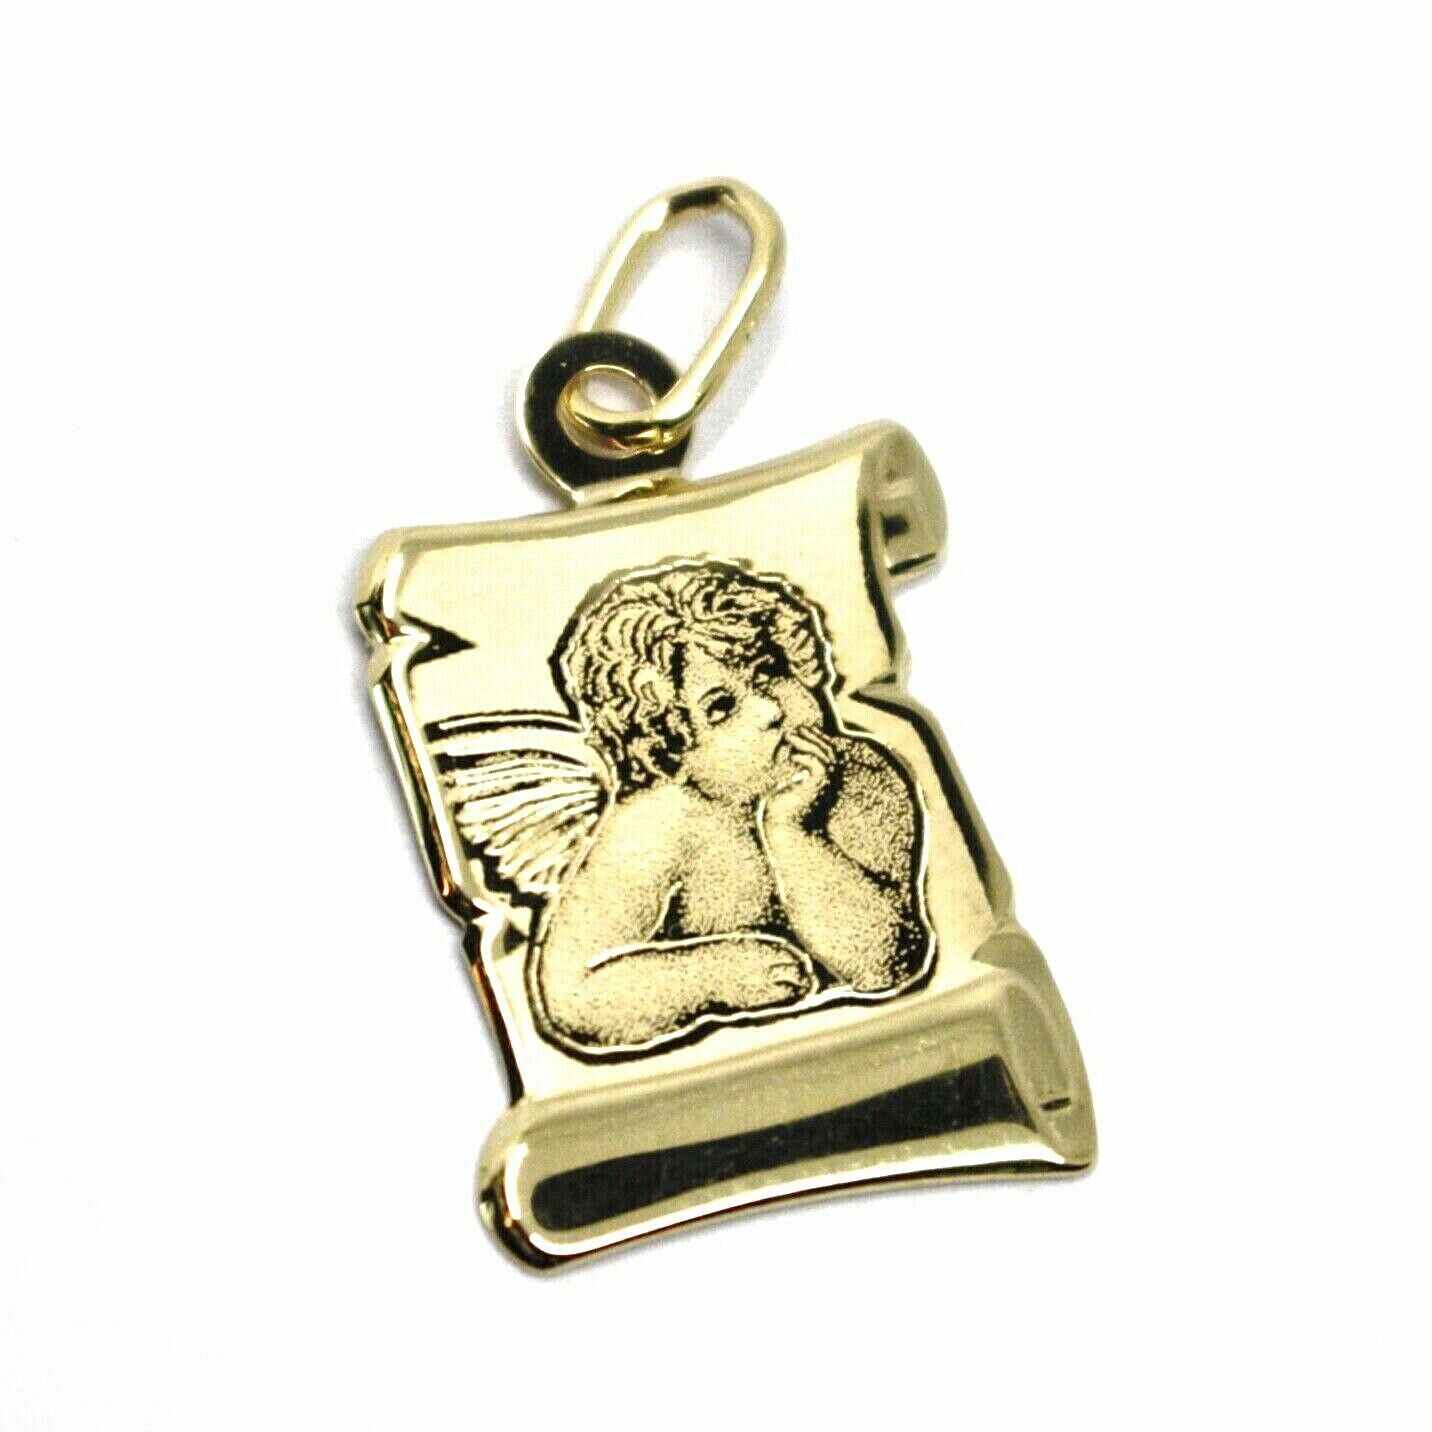 SOLID 18K YELLOW PARCHMENT GOLD MEDAL GUARDIAN ANGEL 18 mm LENGTH VERY DETAILED